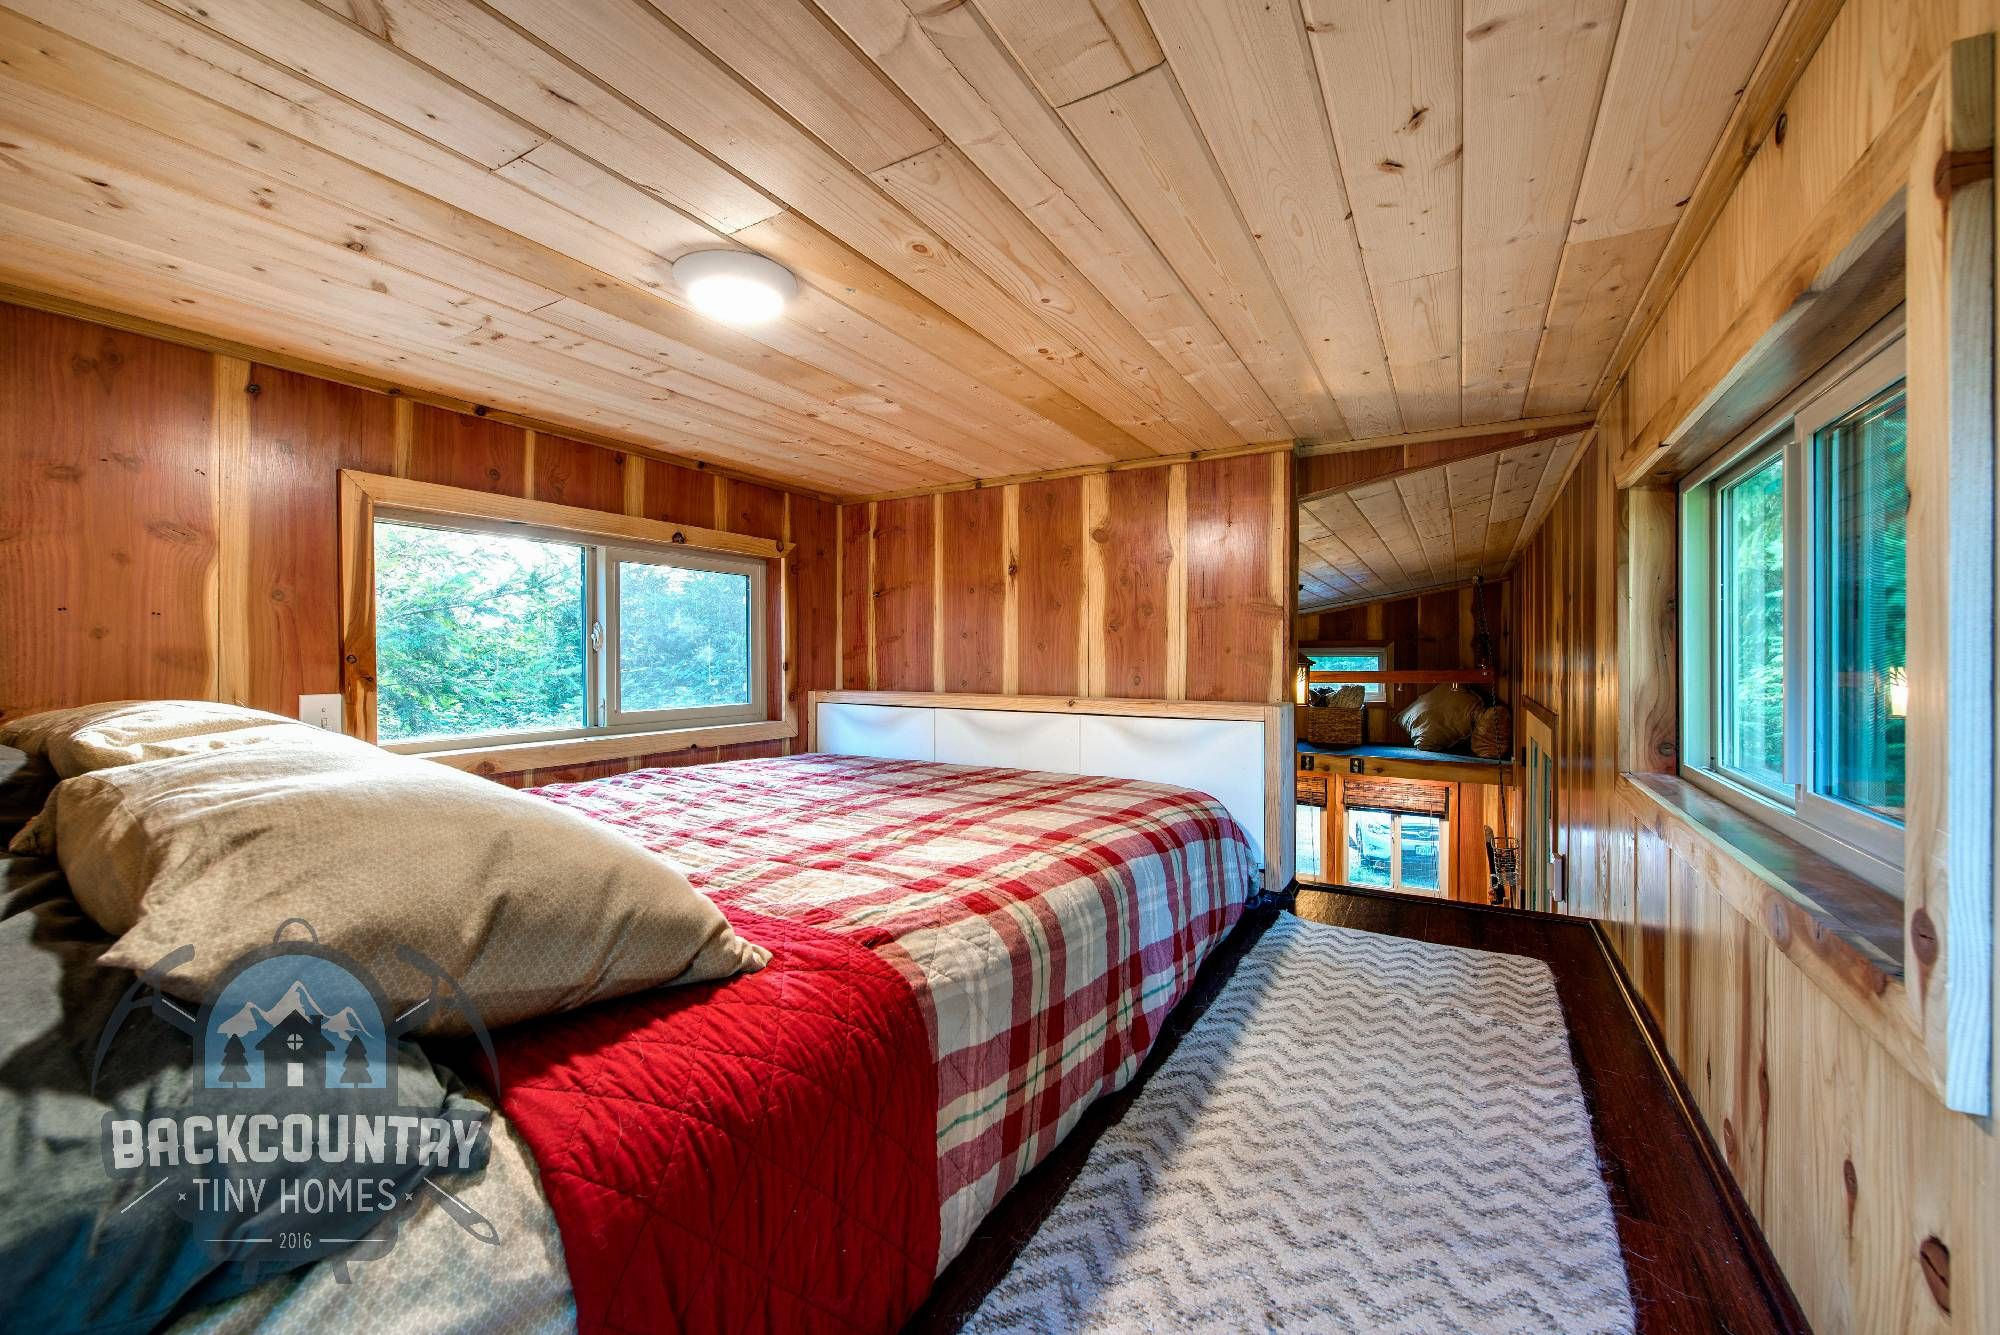 The Basecamp Tiny Home Is A Small House On Wheels